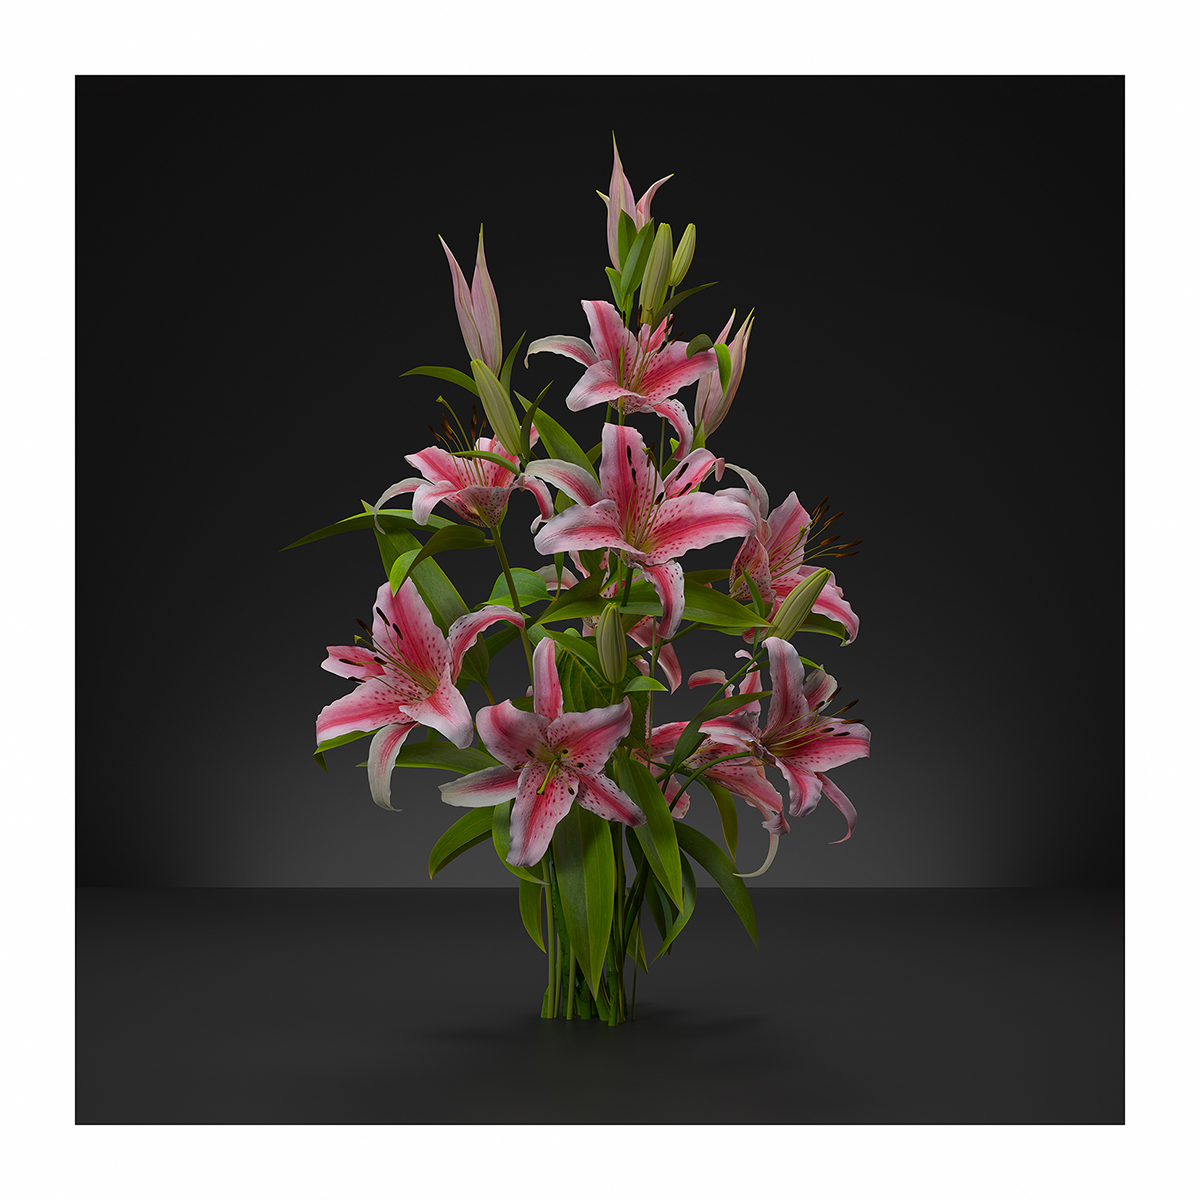 Virtual Flowers Bouquet N1 1 - 2020 - Virtual Flowers. Bouquet N°1